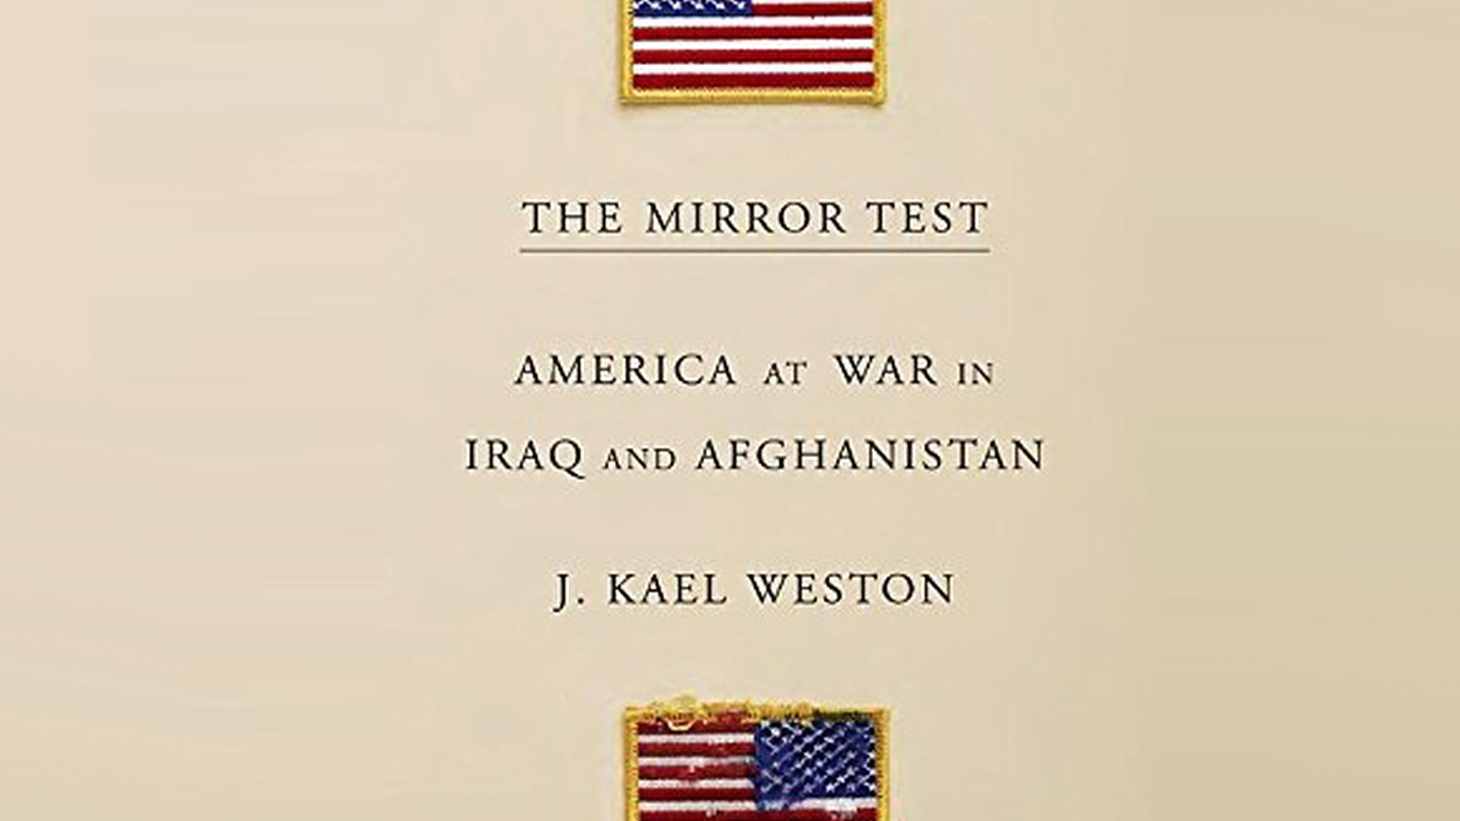 For seven consecutive years, J. Kael Weston served in the combat zones of Iraq and Afghanistan -- not as a soldier, but as a civilian — a State Department Advisor. He received the Secretary of State's Medal for Heroism. Now he's written a searing account about his experience called  The Mirror Test: America at War in Iraq and Afghanistan .